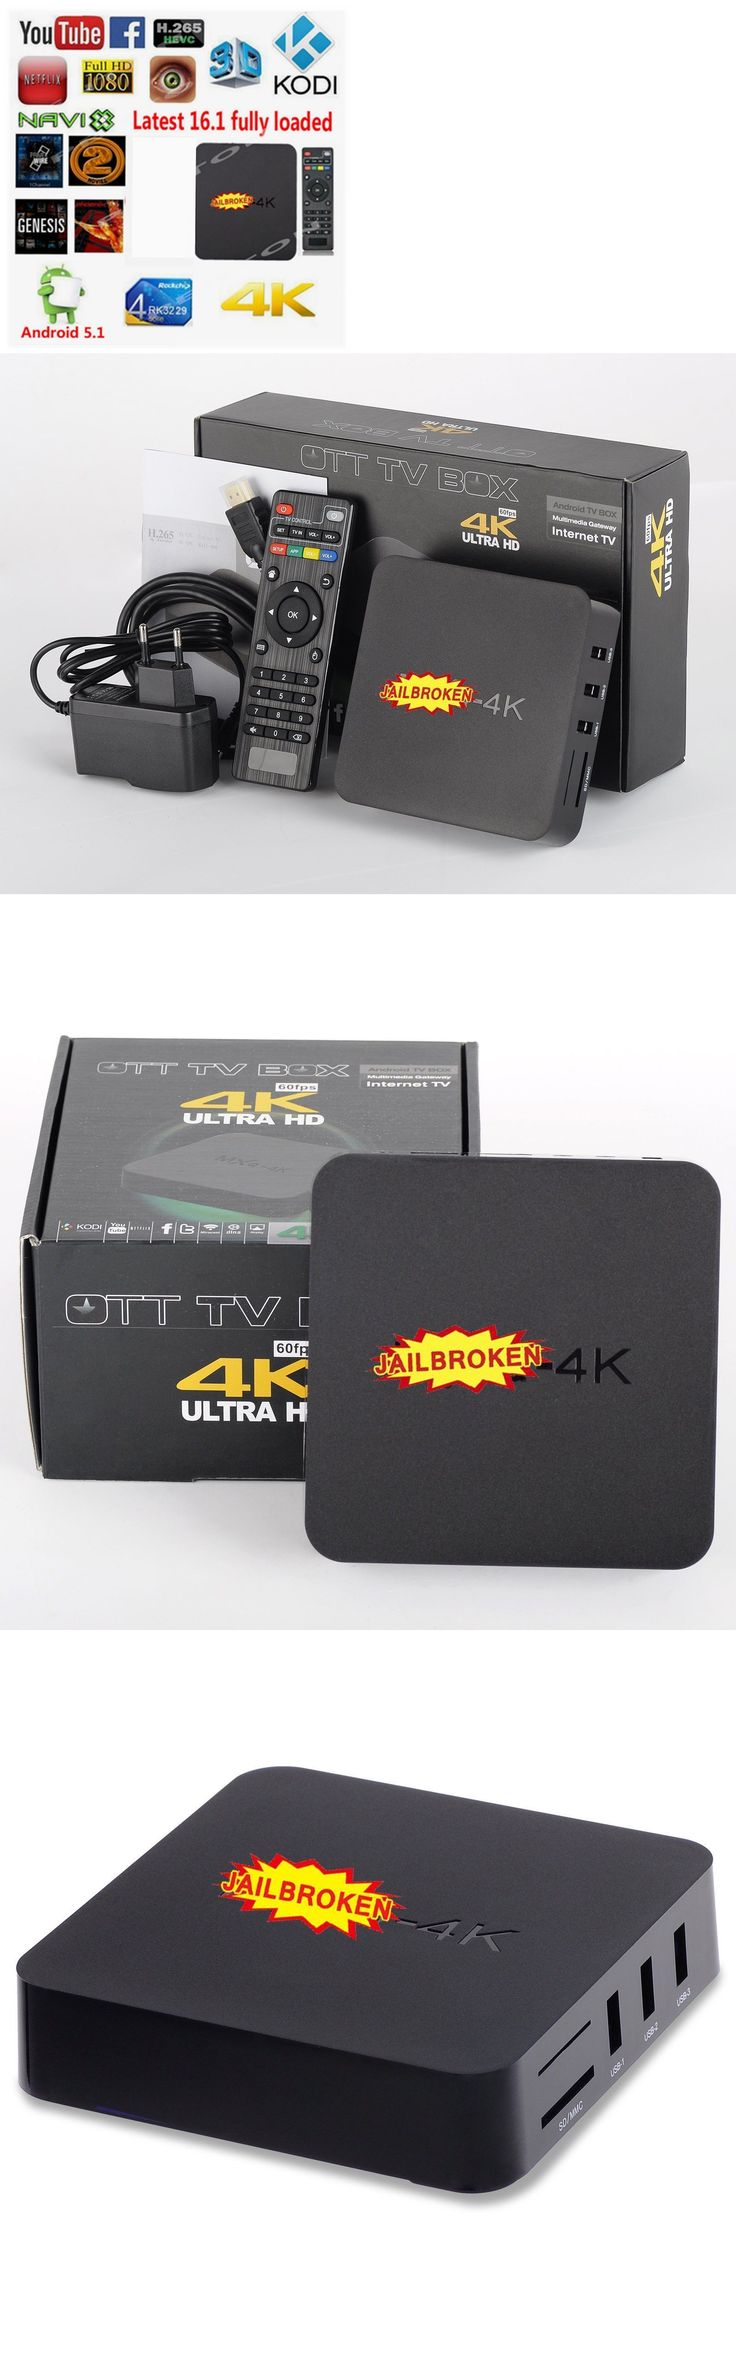 Internet and Media Streamers: Mxq 4K Android 5.1 Tv Box Kodi 16.1 Rk3229 Quad Core Hd Wifi Hdmi Media Player -> BUY IT NOW ONLY: $34.5 on eBay!